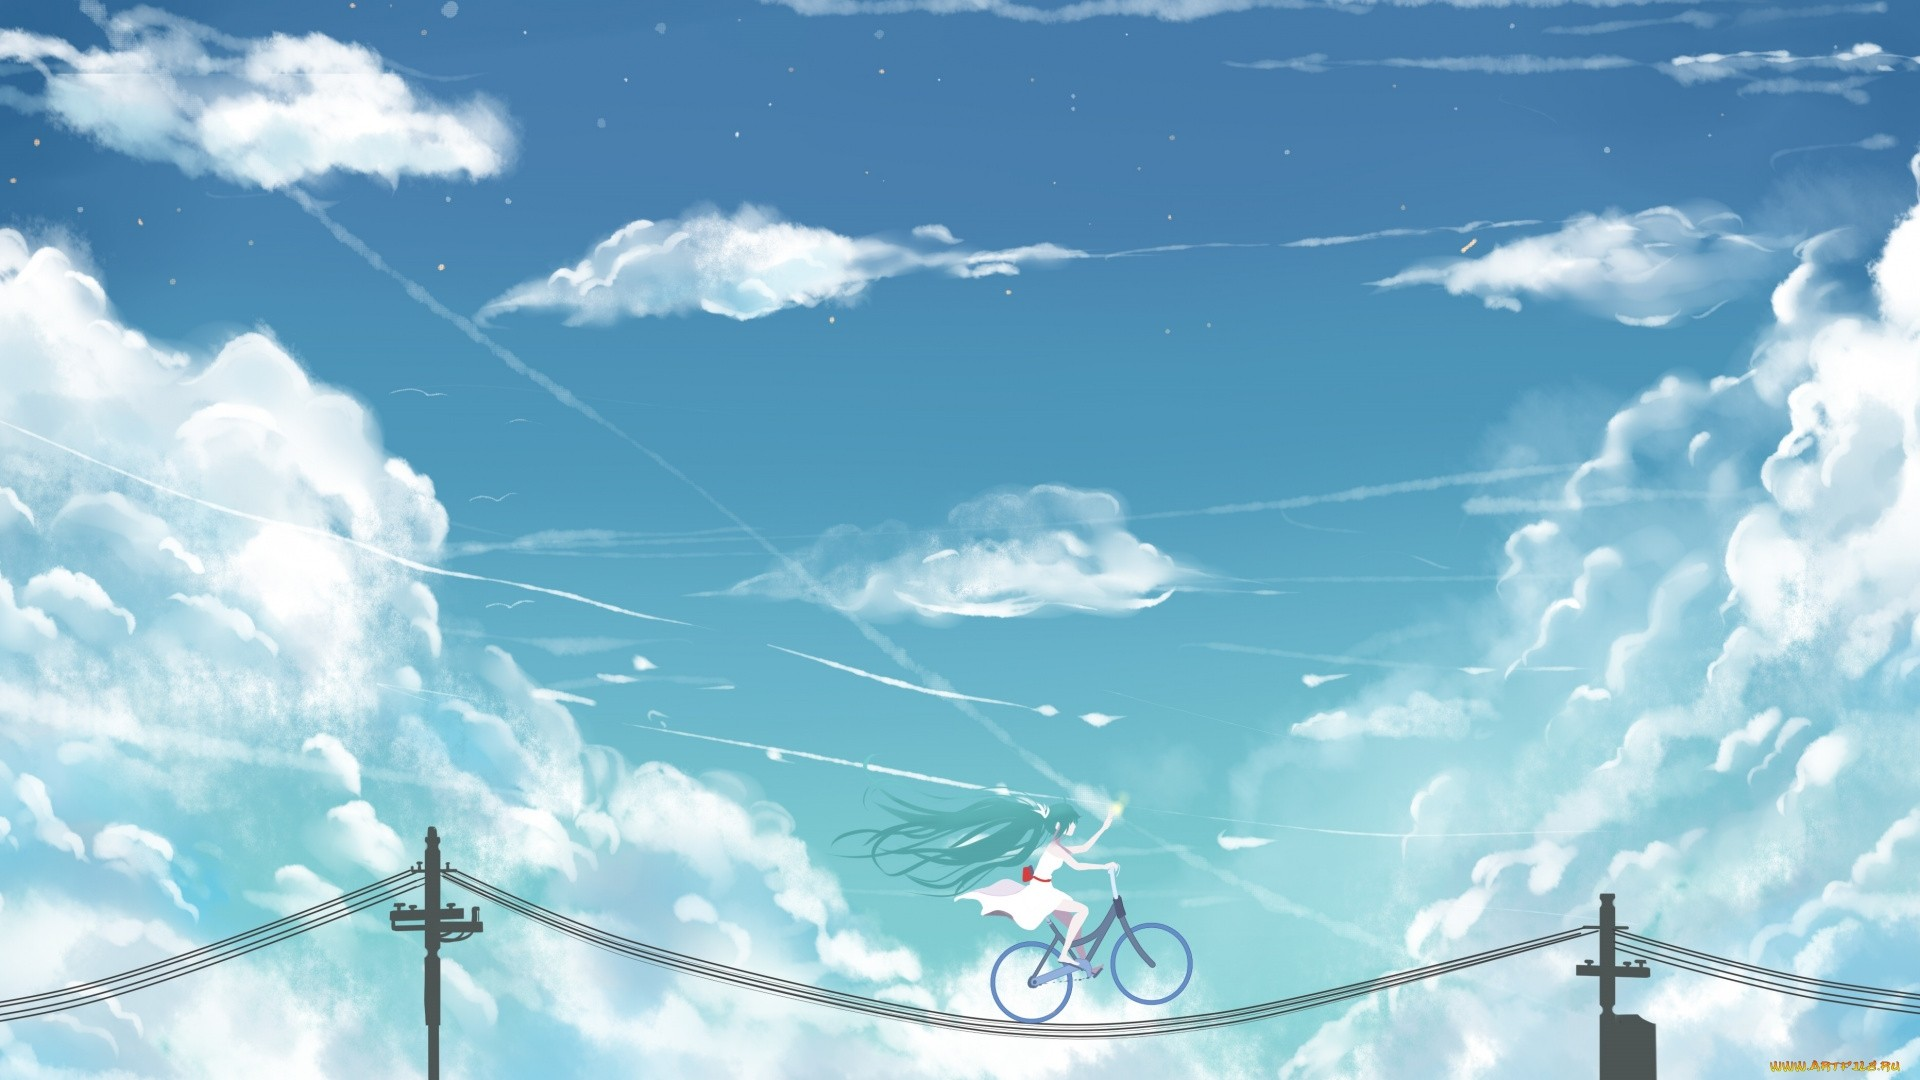 Anime Clouds Wallpaper Picture hd